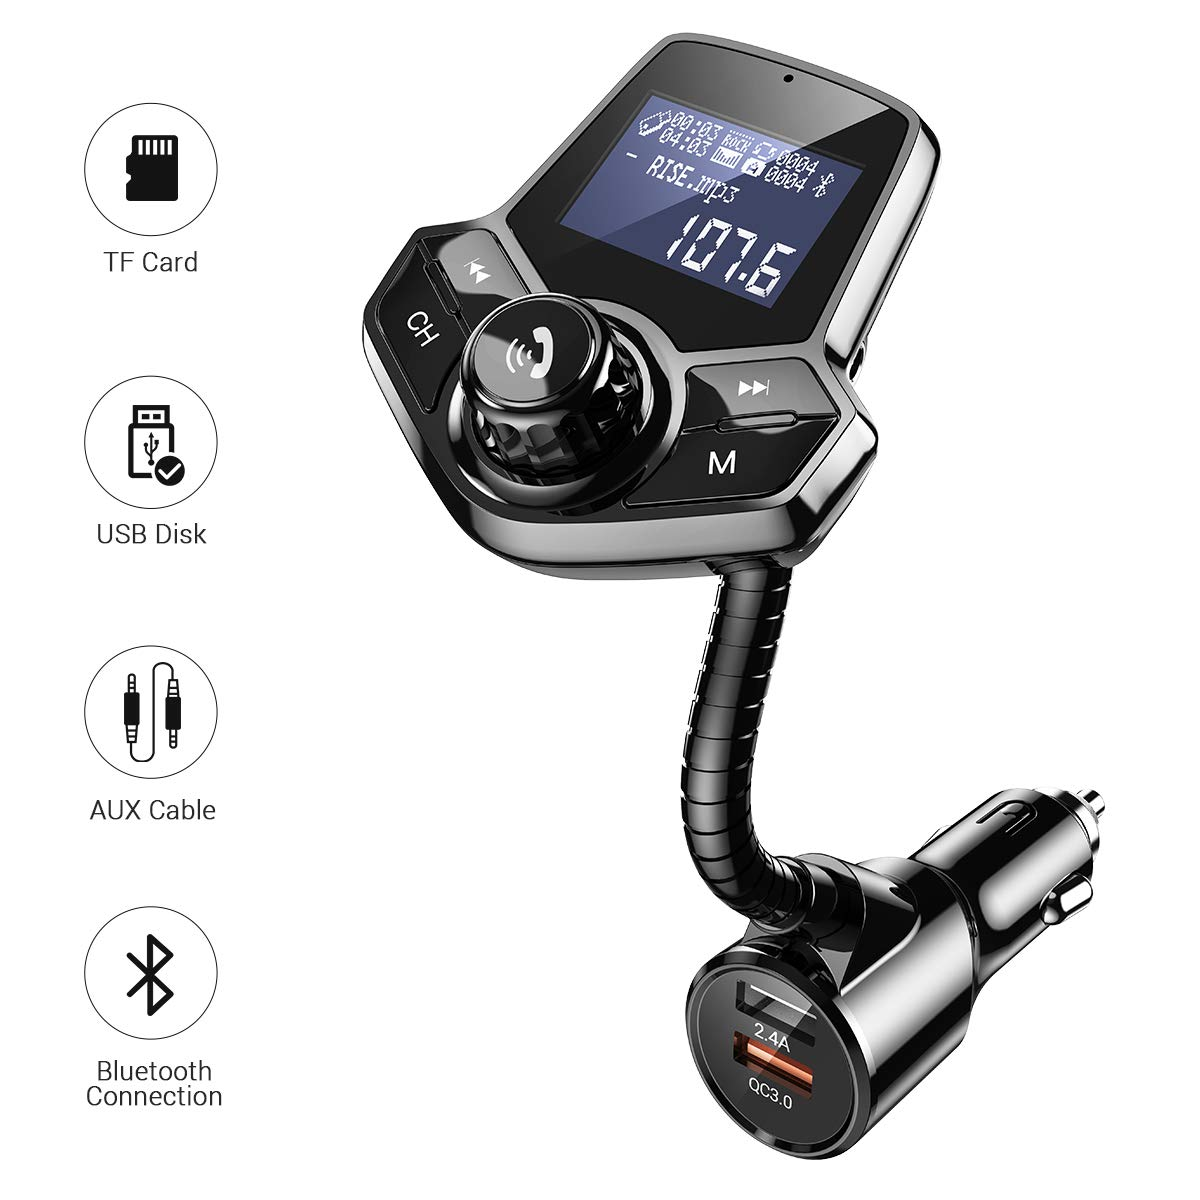 AINOPE Bluetooth FM Transmitter for Car, Upgrade [Power On/Off Switch] Bluetooth Car Adapter QC3.0 Qual Port Quick Charging with Hands Free Calling Radio Aux Hransmitter Support TF/SD Card, U-Disk by AINOPE